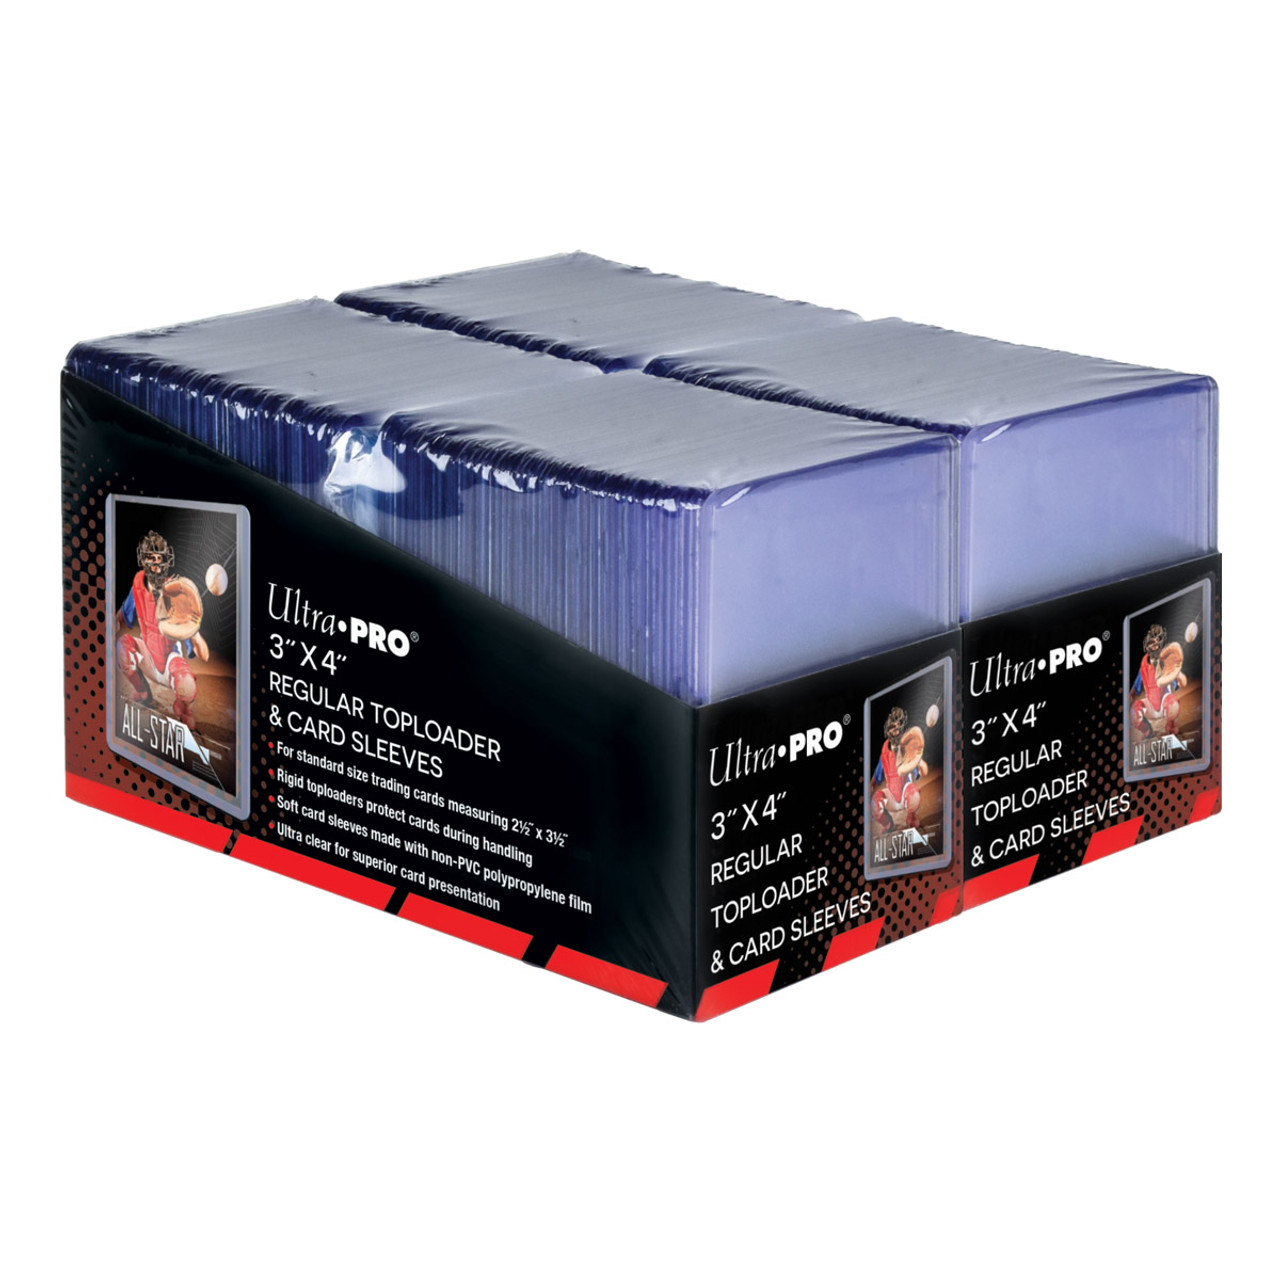 Top Loader - 3x4 Regular and Card Sleeves (200 per pack)